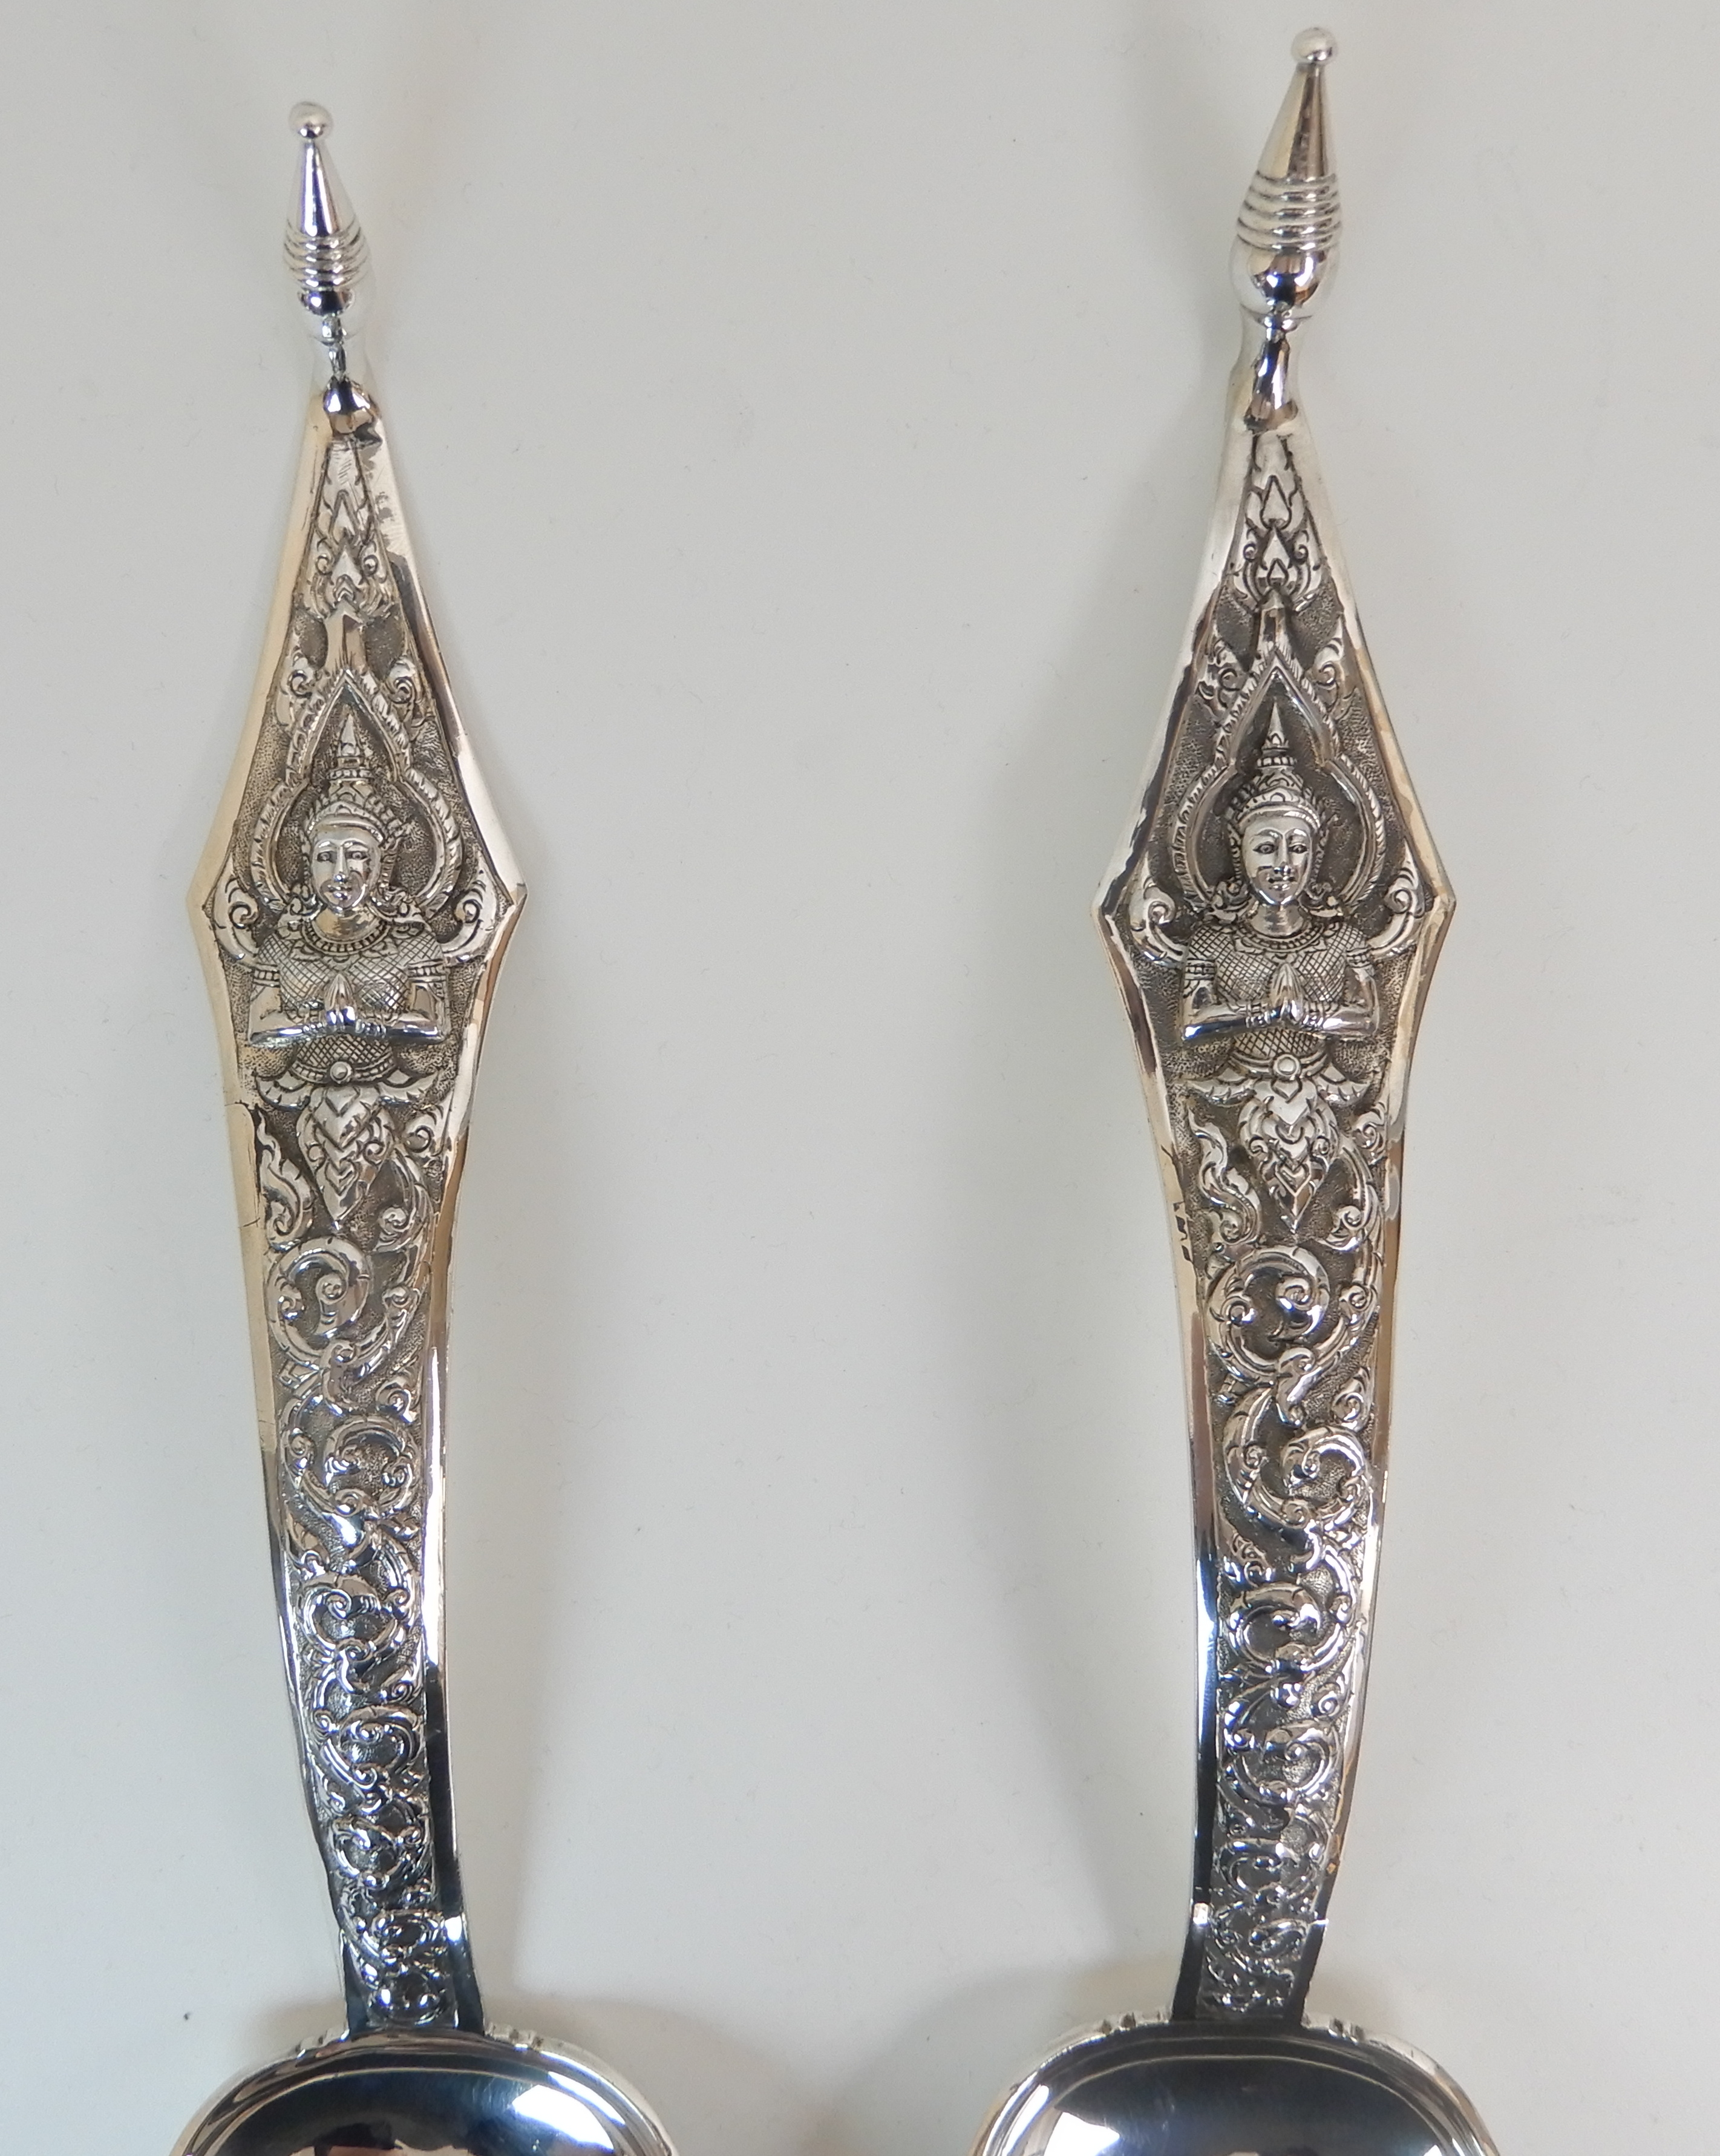 Lot 129 - A PAIR OF EASTERN SERVING SPOONS marked Thailand sterling, the shaped stem with a seated Buddha amid